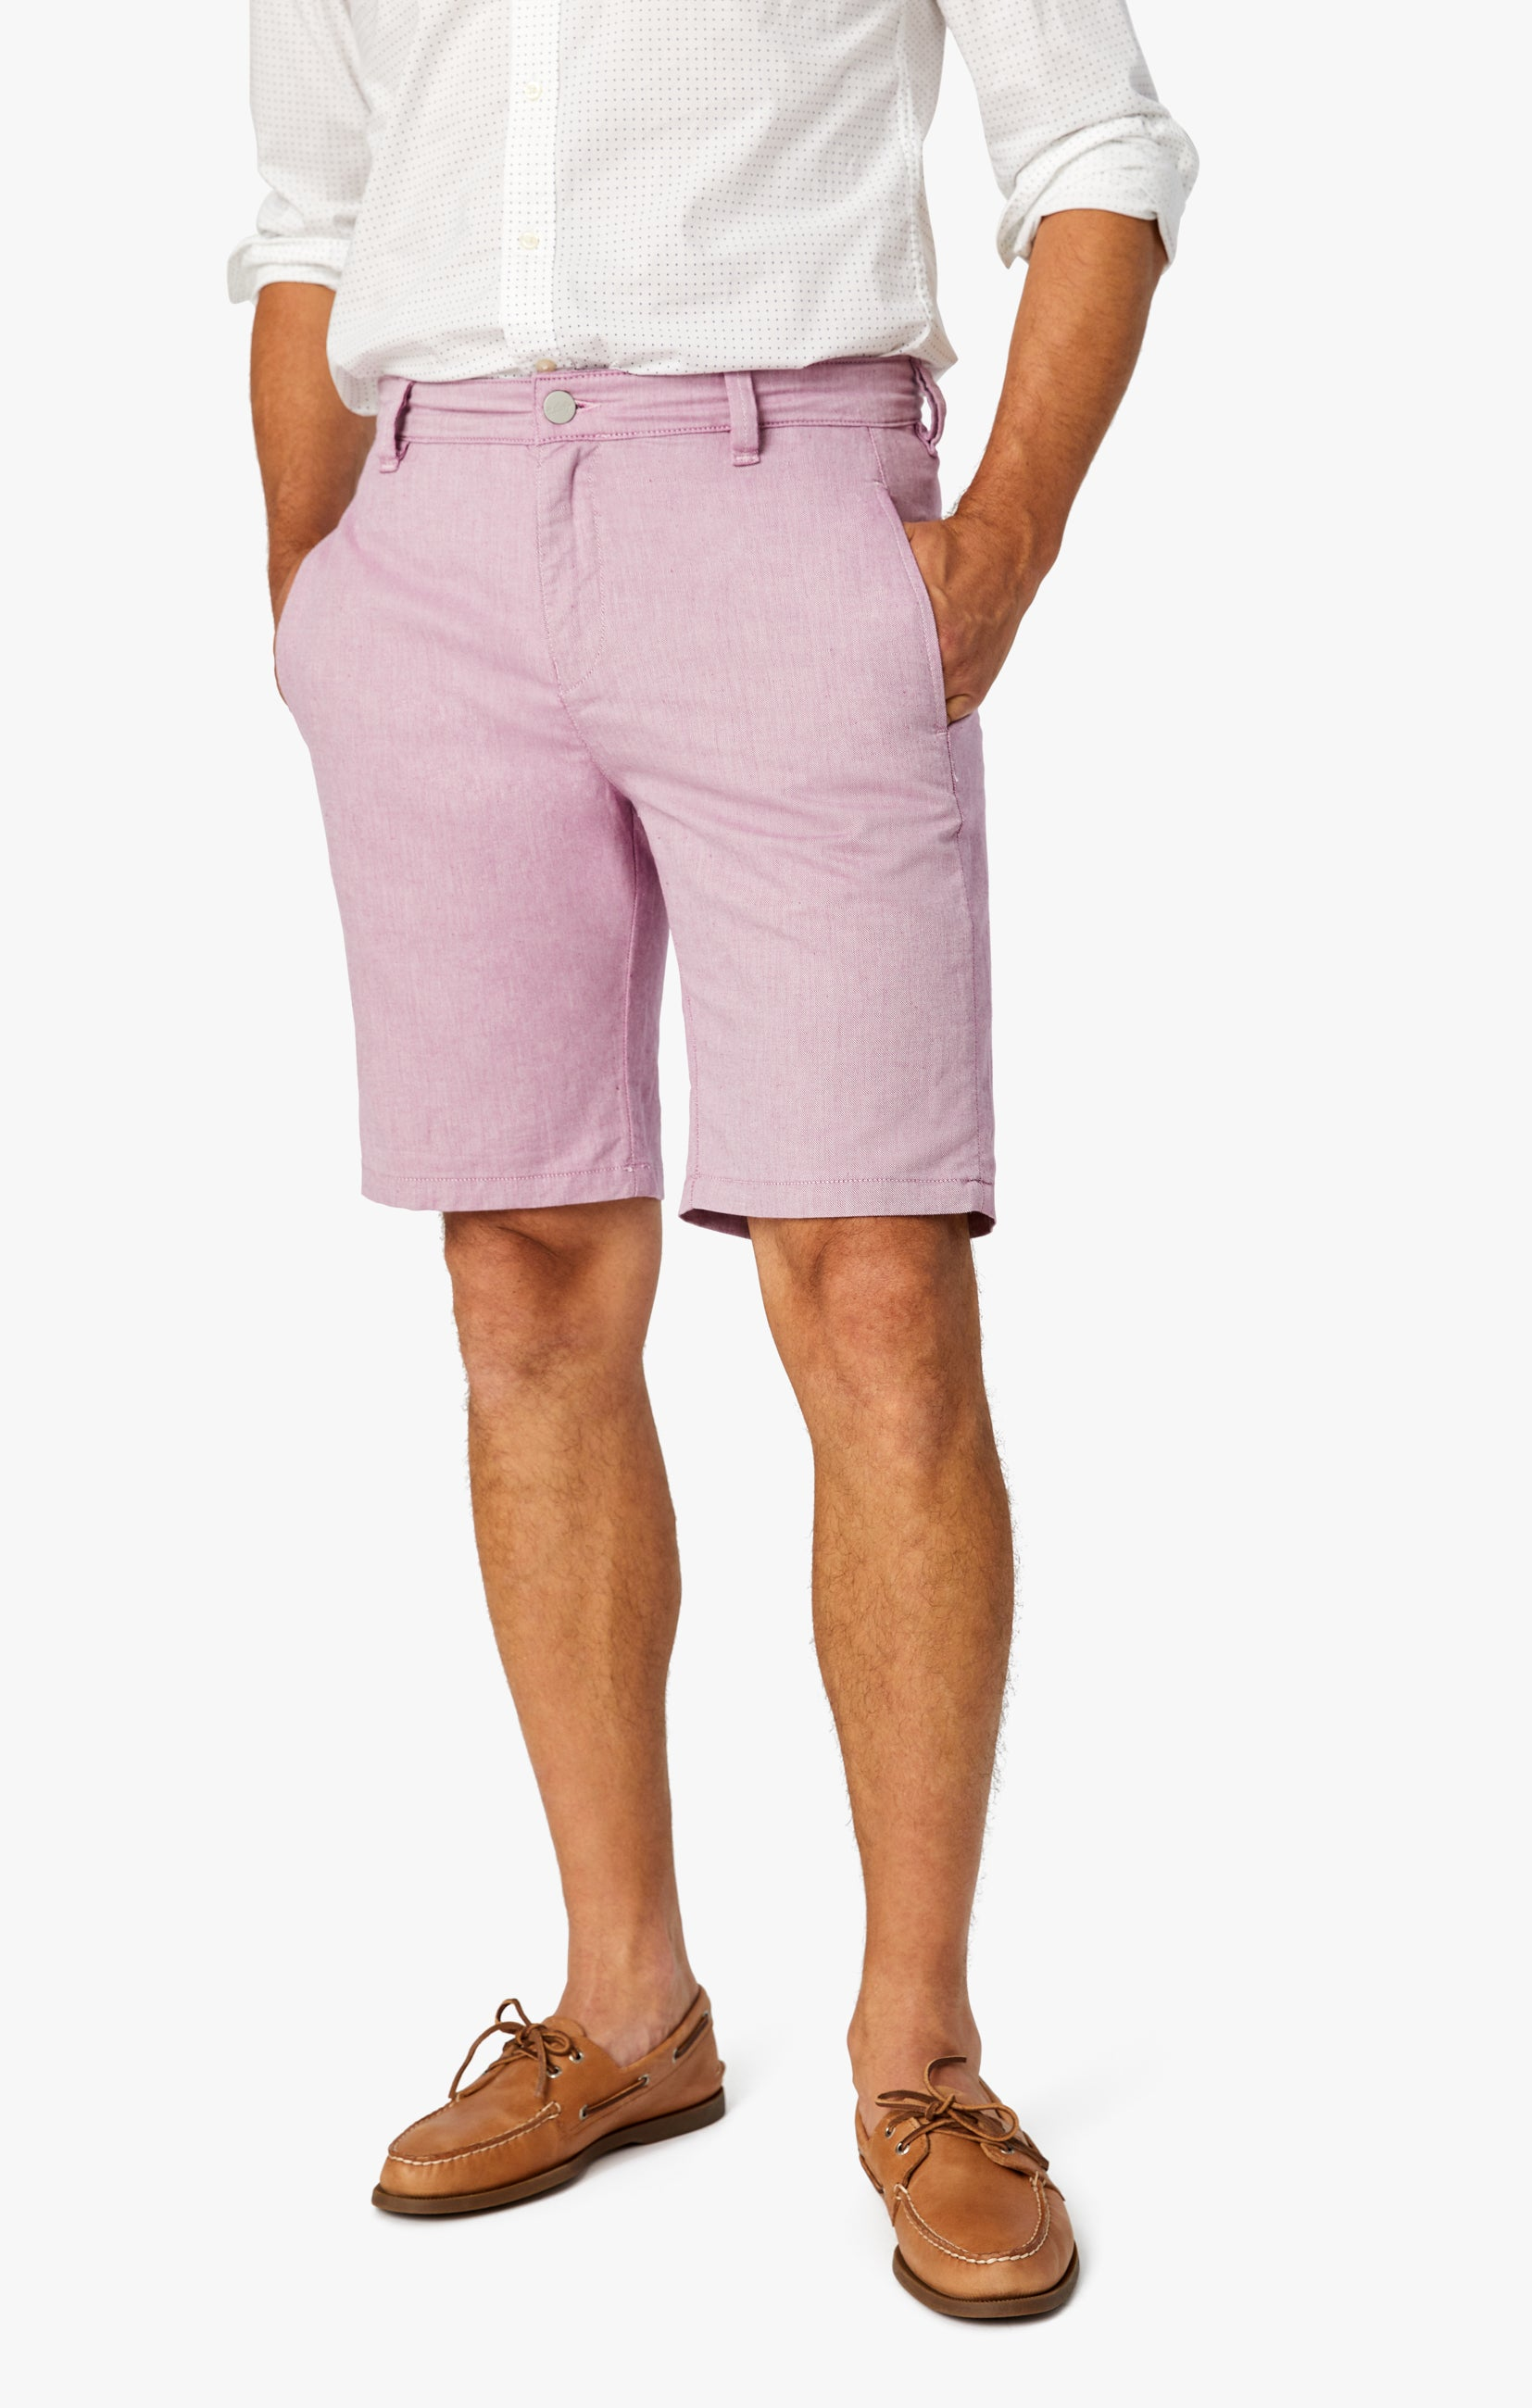 Nevada Shorts In Berry Luxe Reversed Image 9